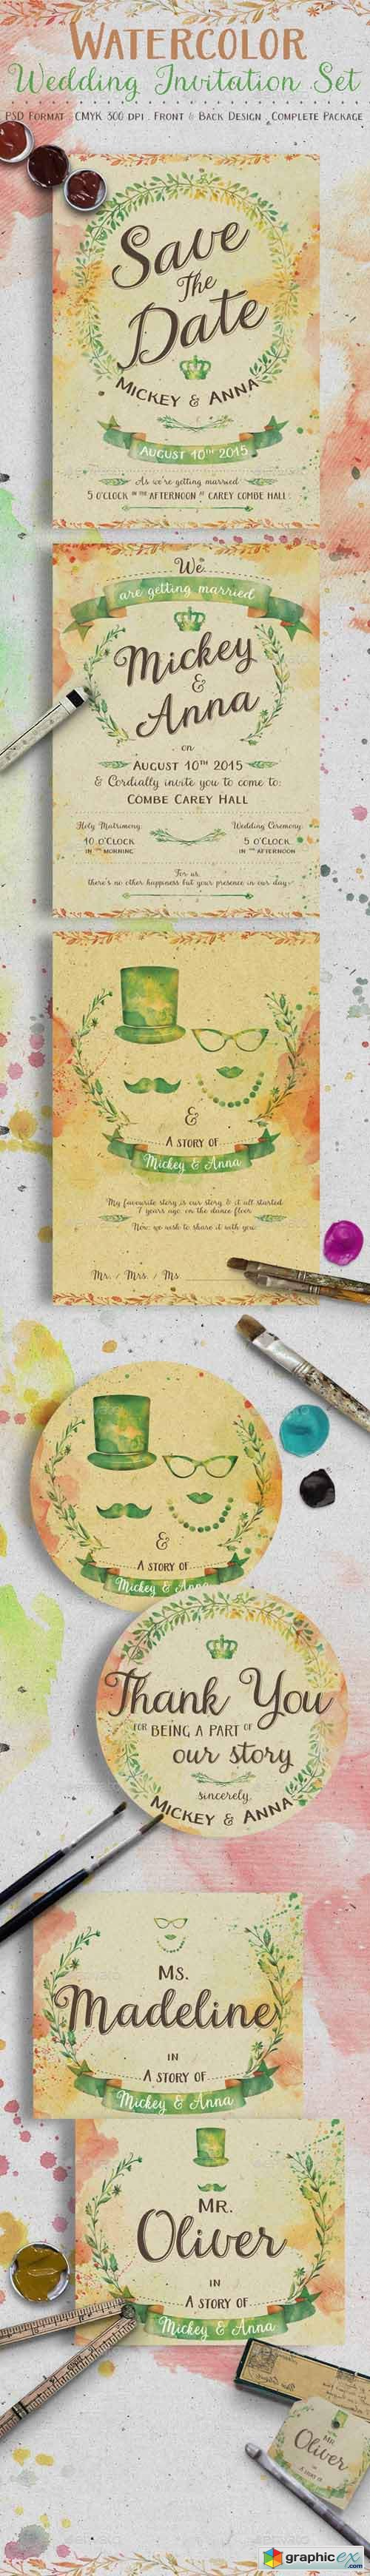 Watercolor Wedding Invitation Set 11988208